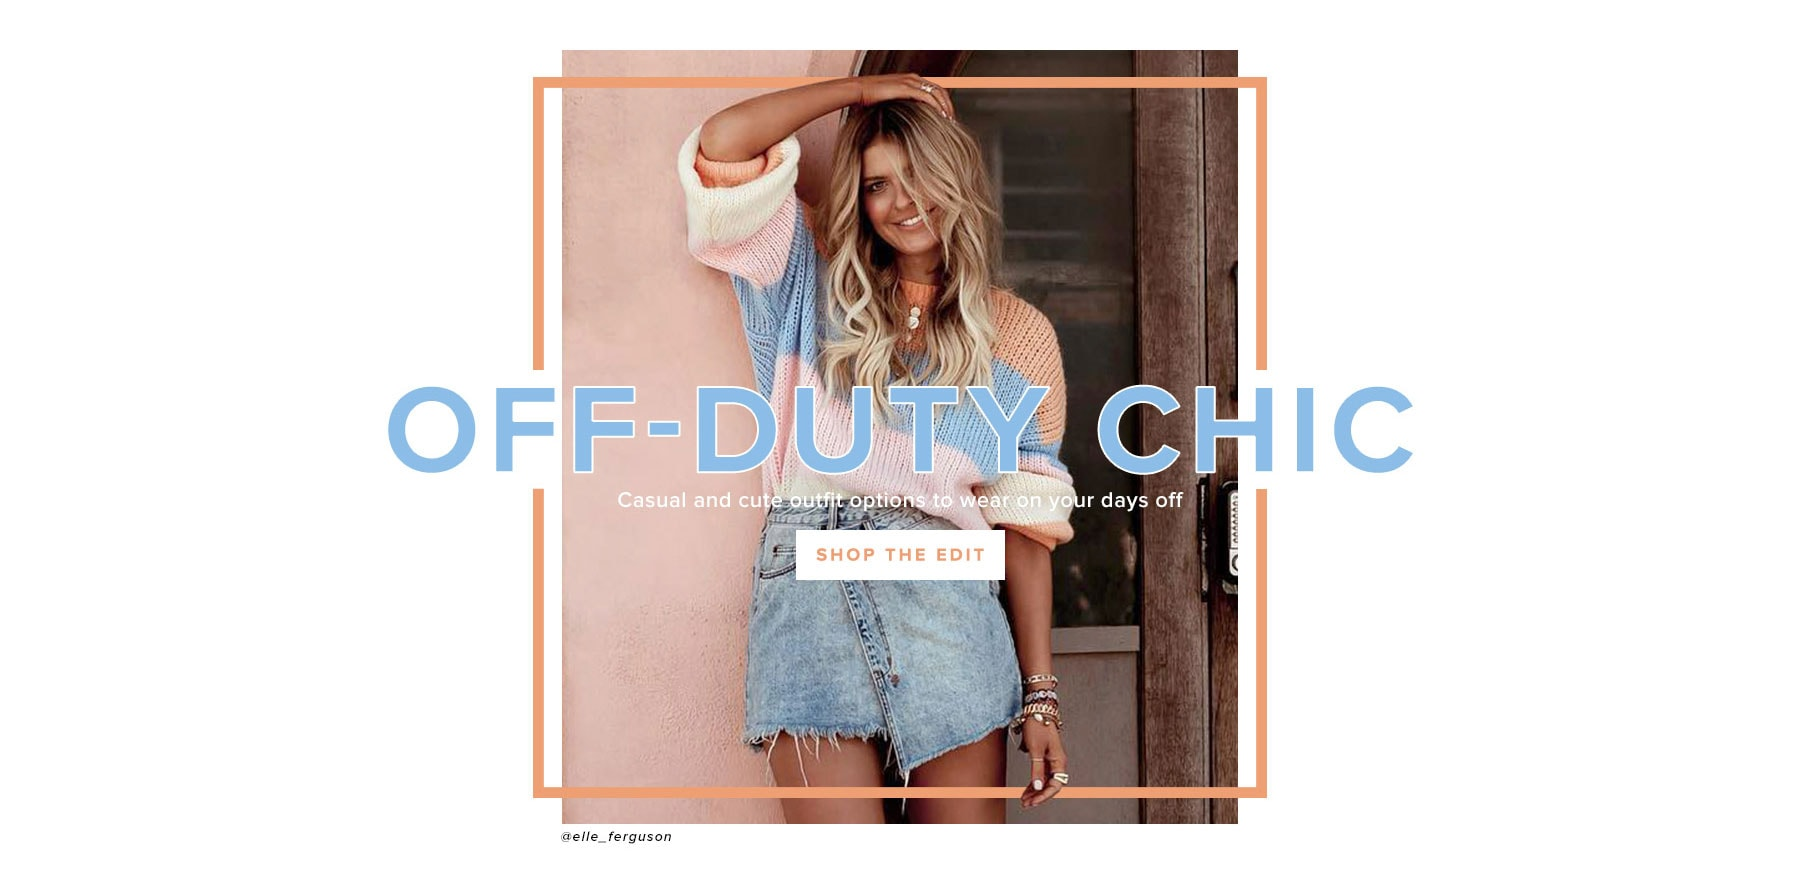 Off-Duty Chic. Casual and cute outfit options to wear on your days off. Shop the Edit.